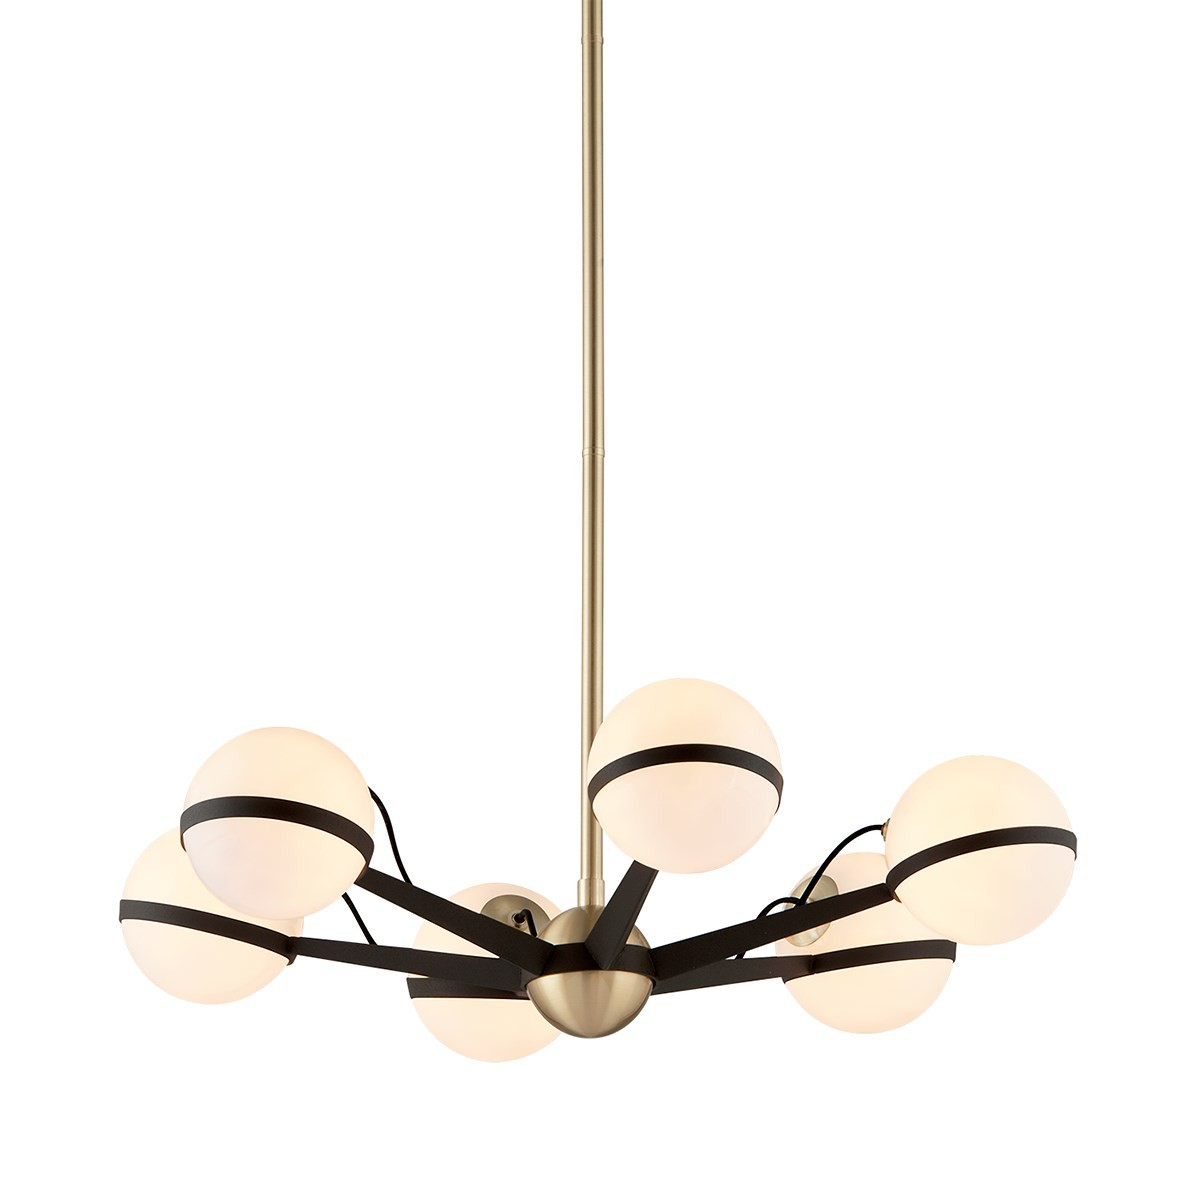 Hudson Valley I Ace Chandelier I Small